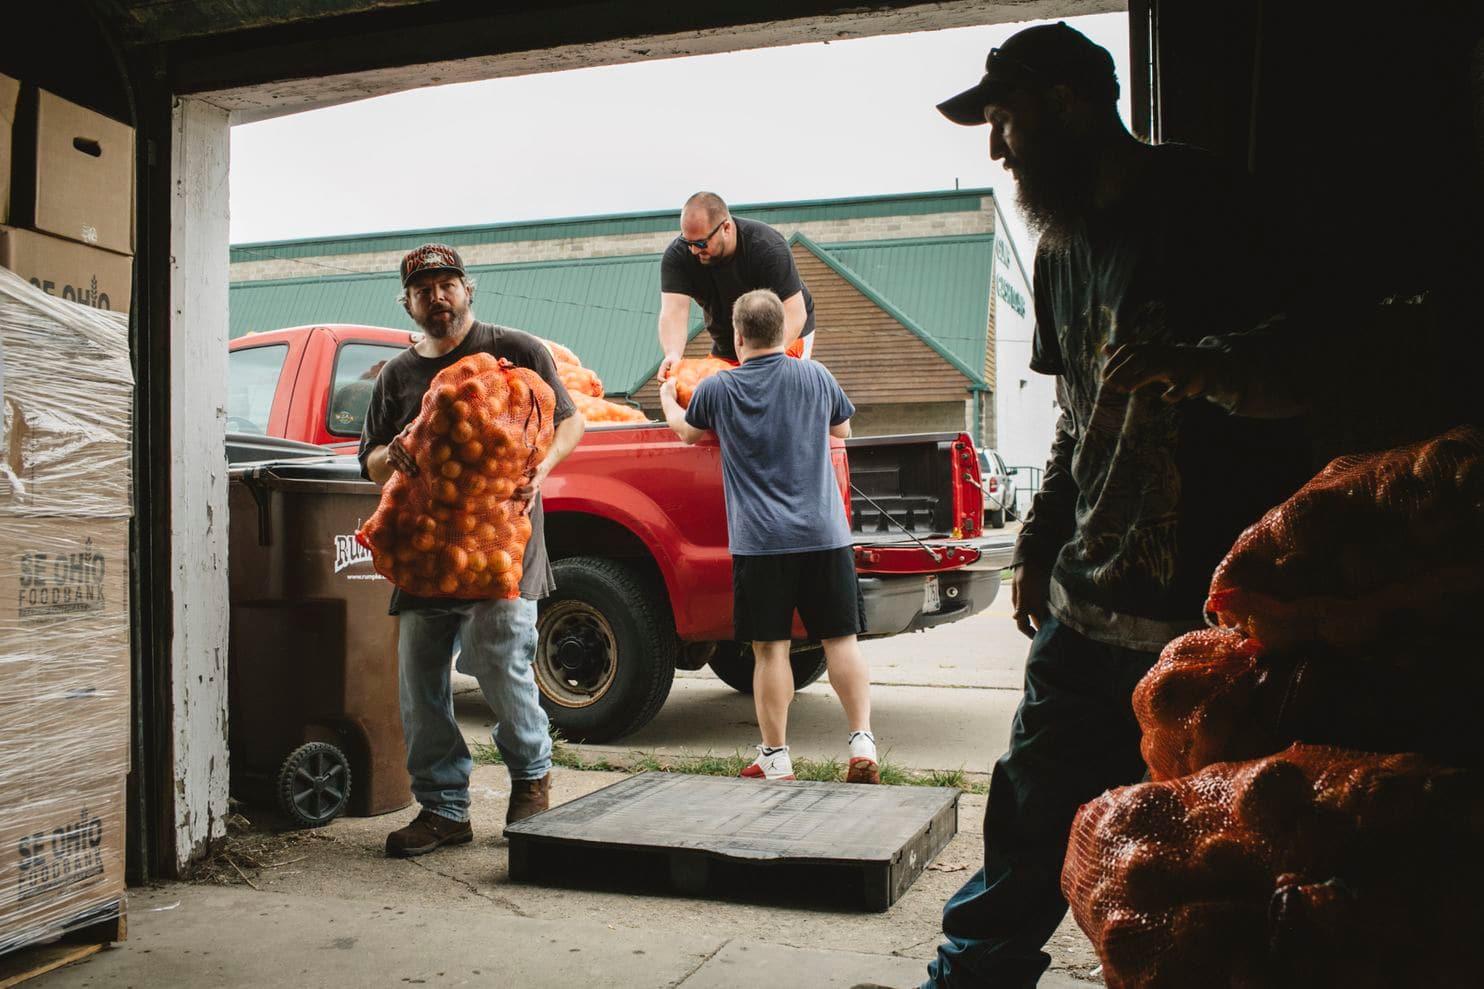 A food pantry struggles to feed an increasingly hungry Ohio community